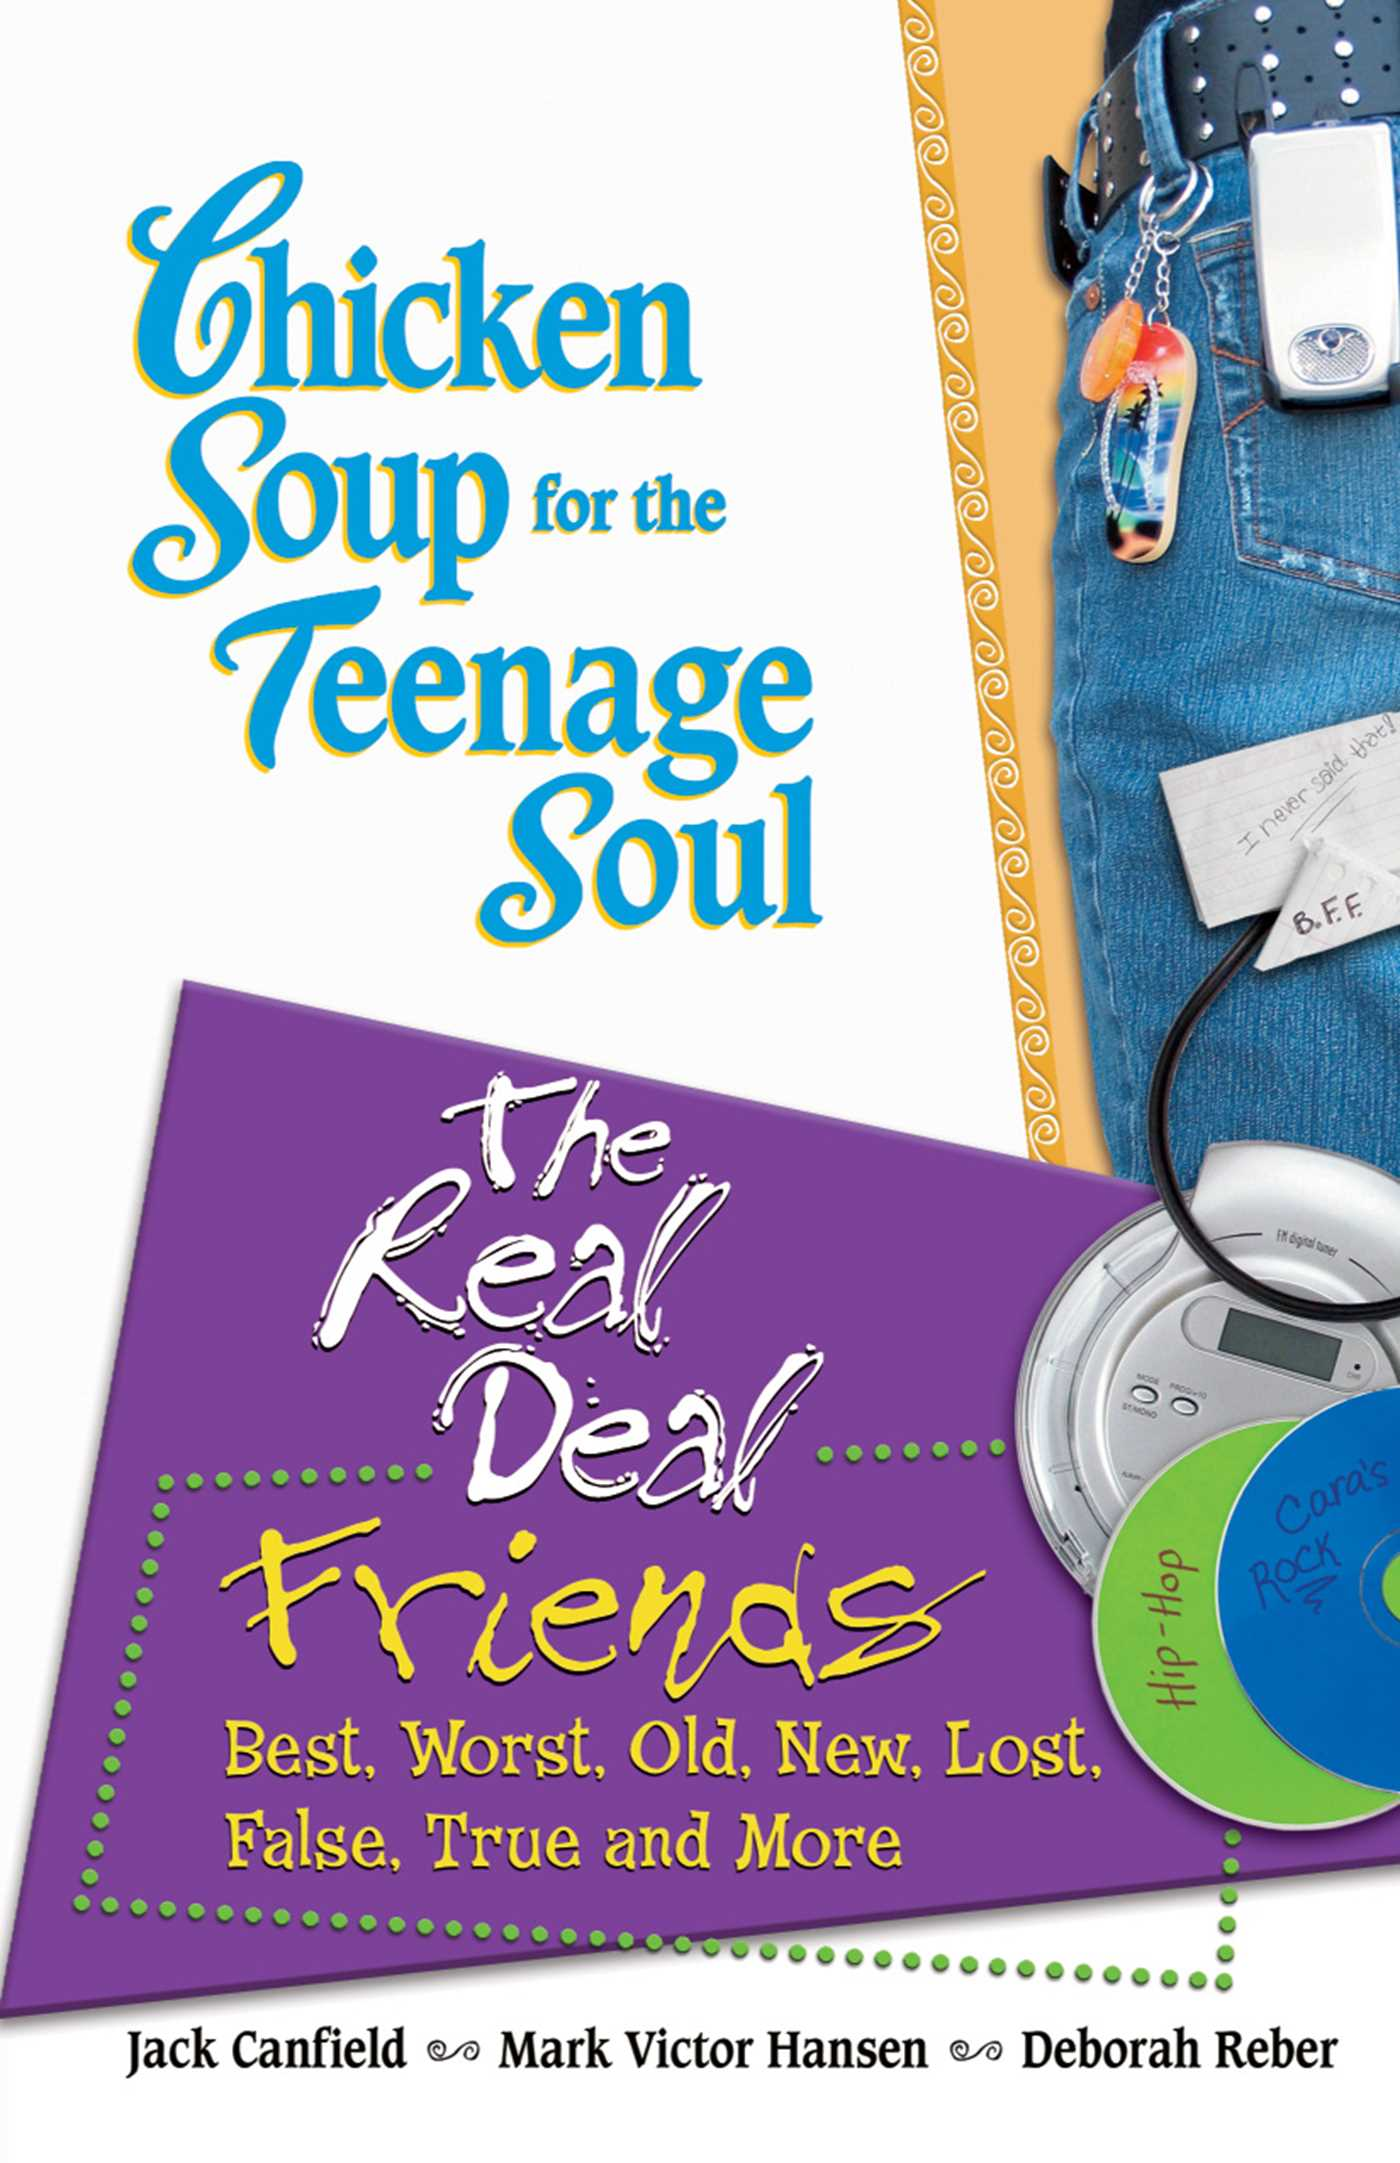 Book Cover Image (jpg): Chicken Soup for the Teenage Soul: The Real Deal  Friends